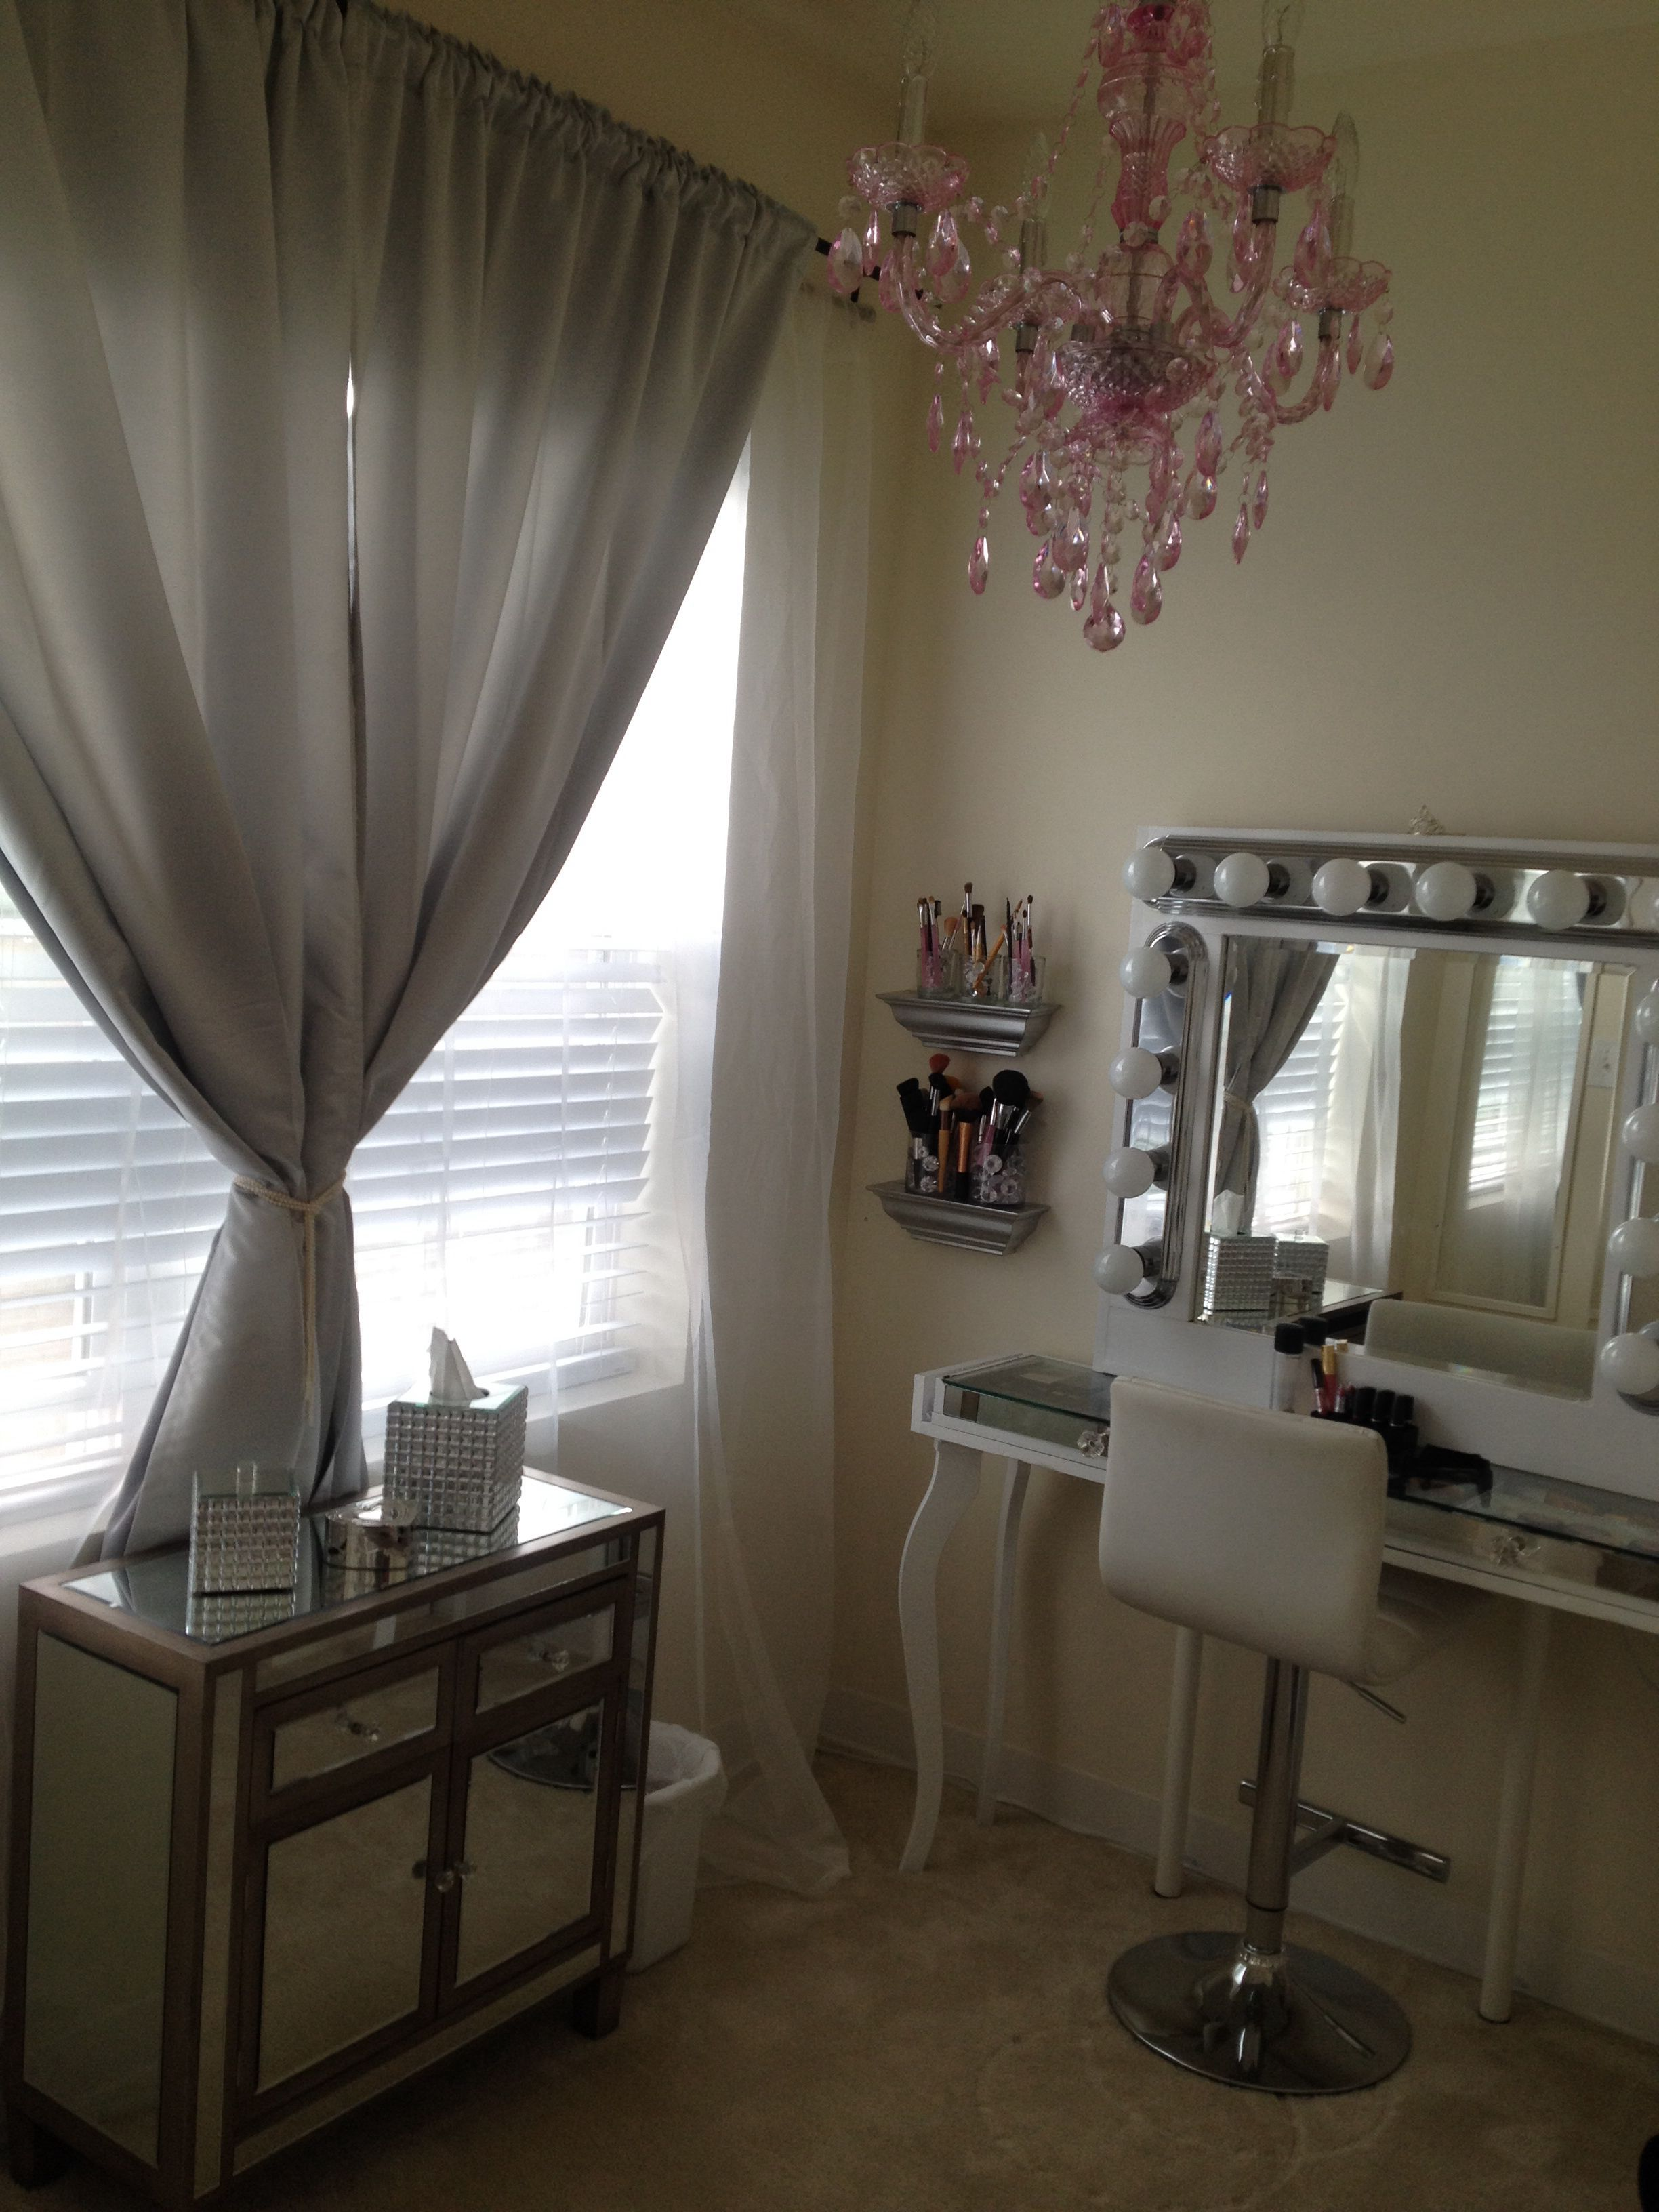 Hollywood Chic Glam Vanity Table Pink Chandelier Silver Sheer White Curtains Makeup Room Vanity Room Curtains Living Room Shabby Chic Curtains Room Decor #silver #curtains #living #room